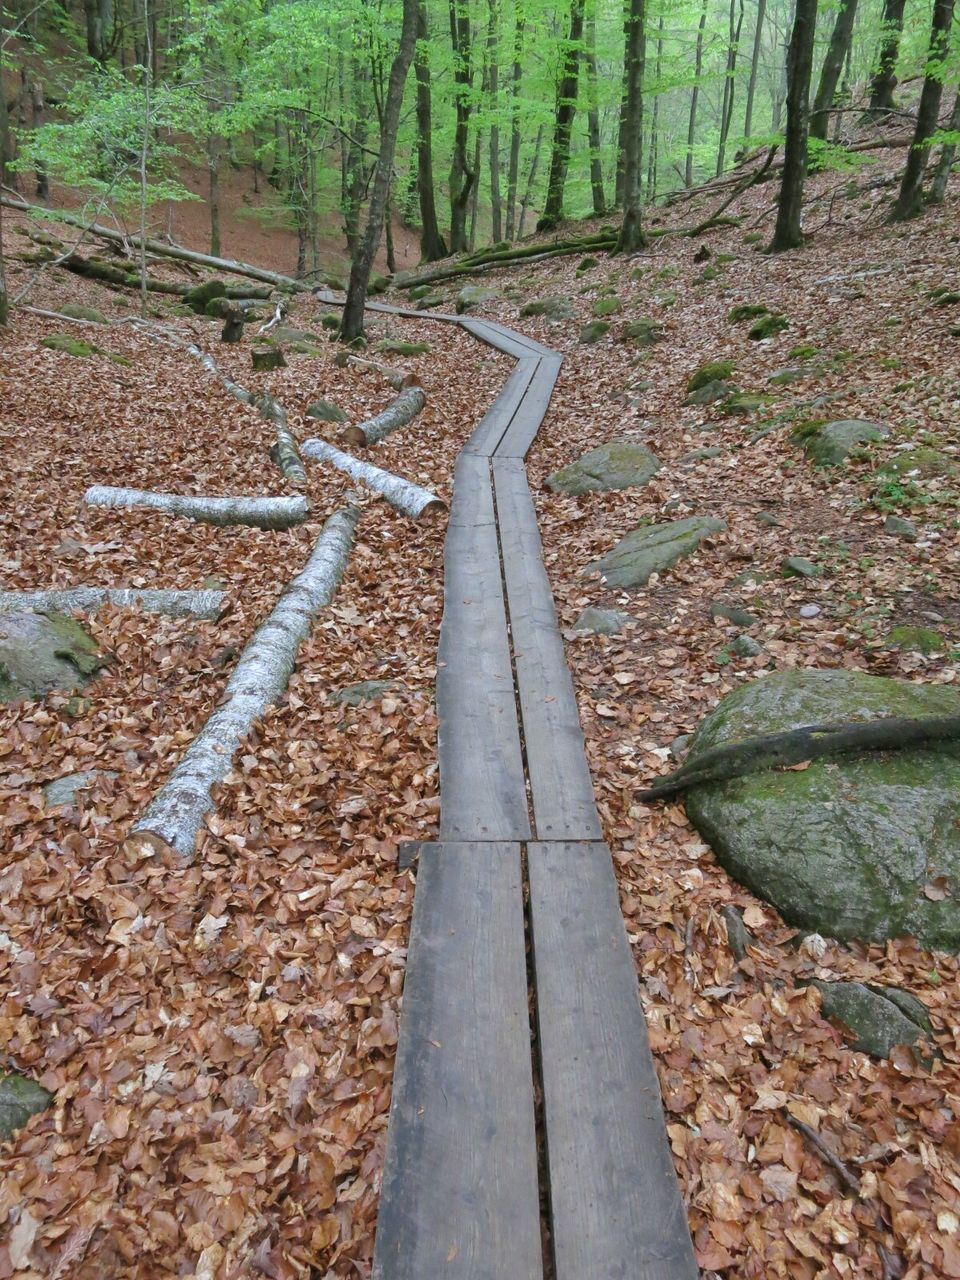 Narrow wooden pathway in the forest